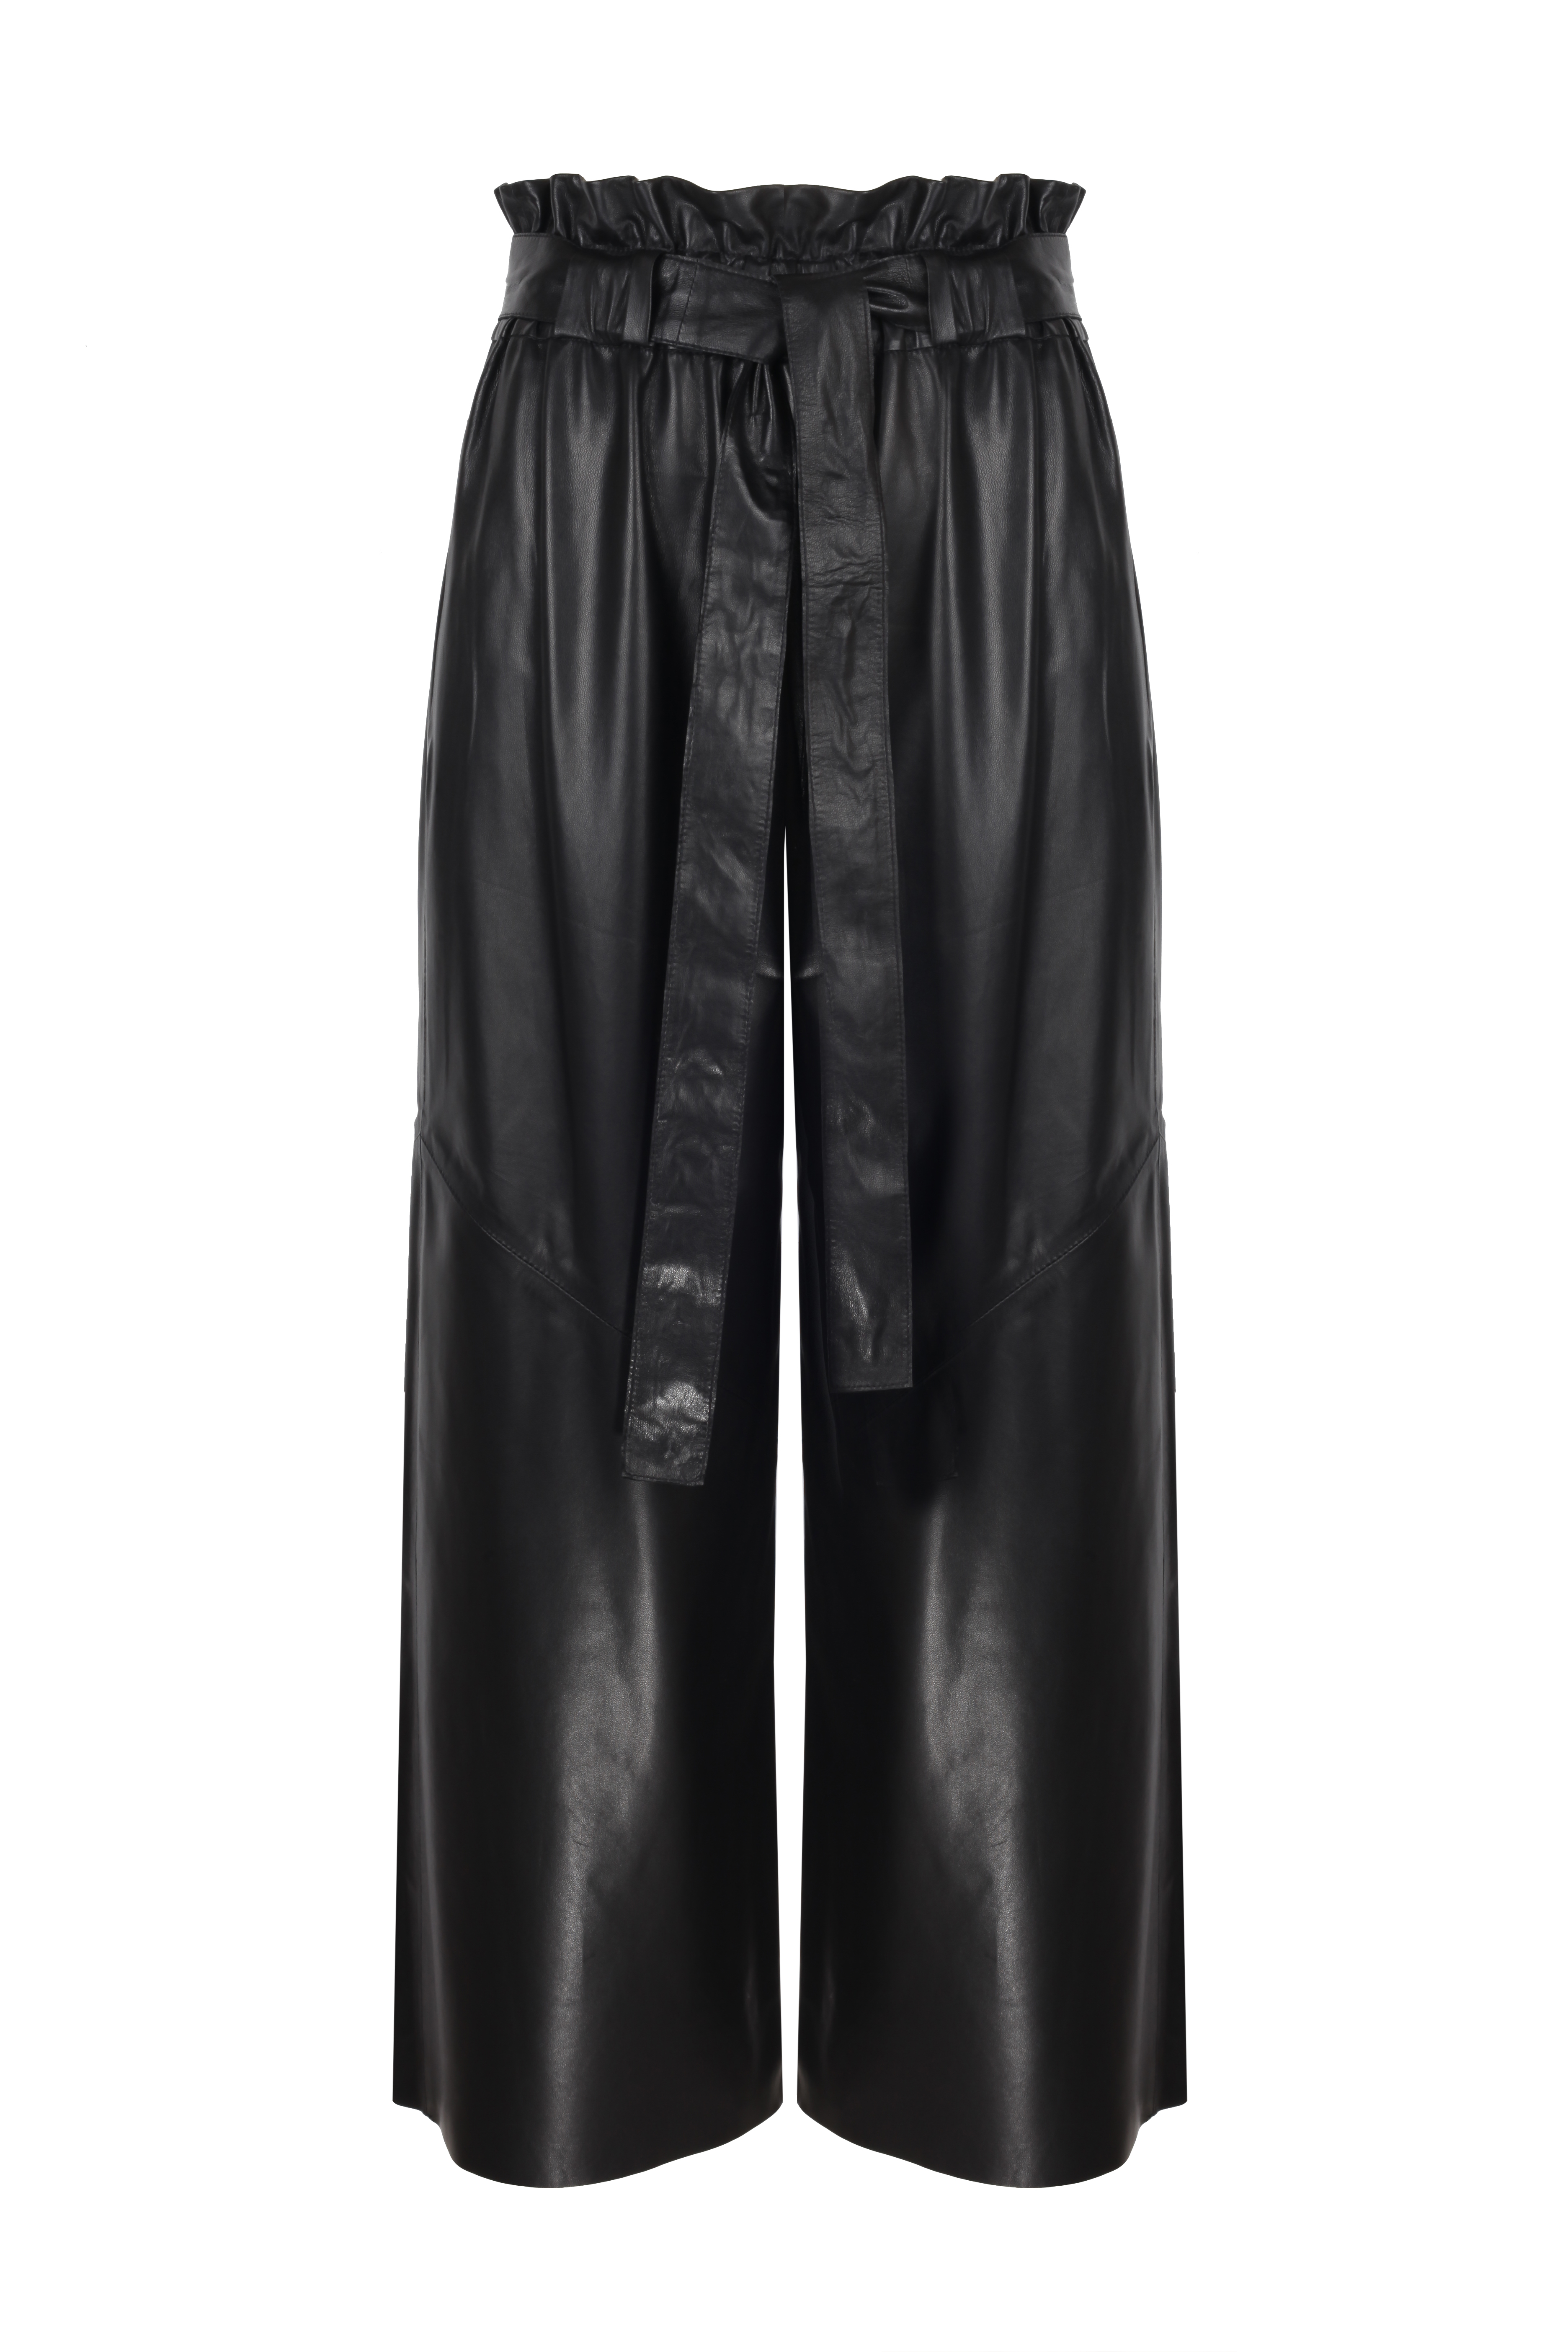 High Waisted Leather Pants - Black by The Ruf on curated-crowd.com